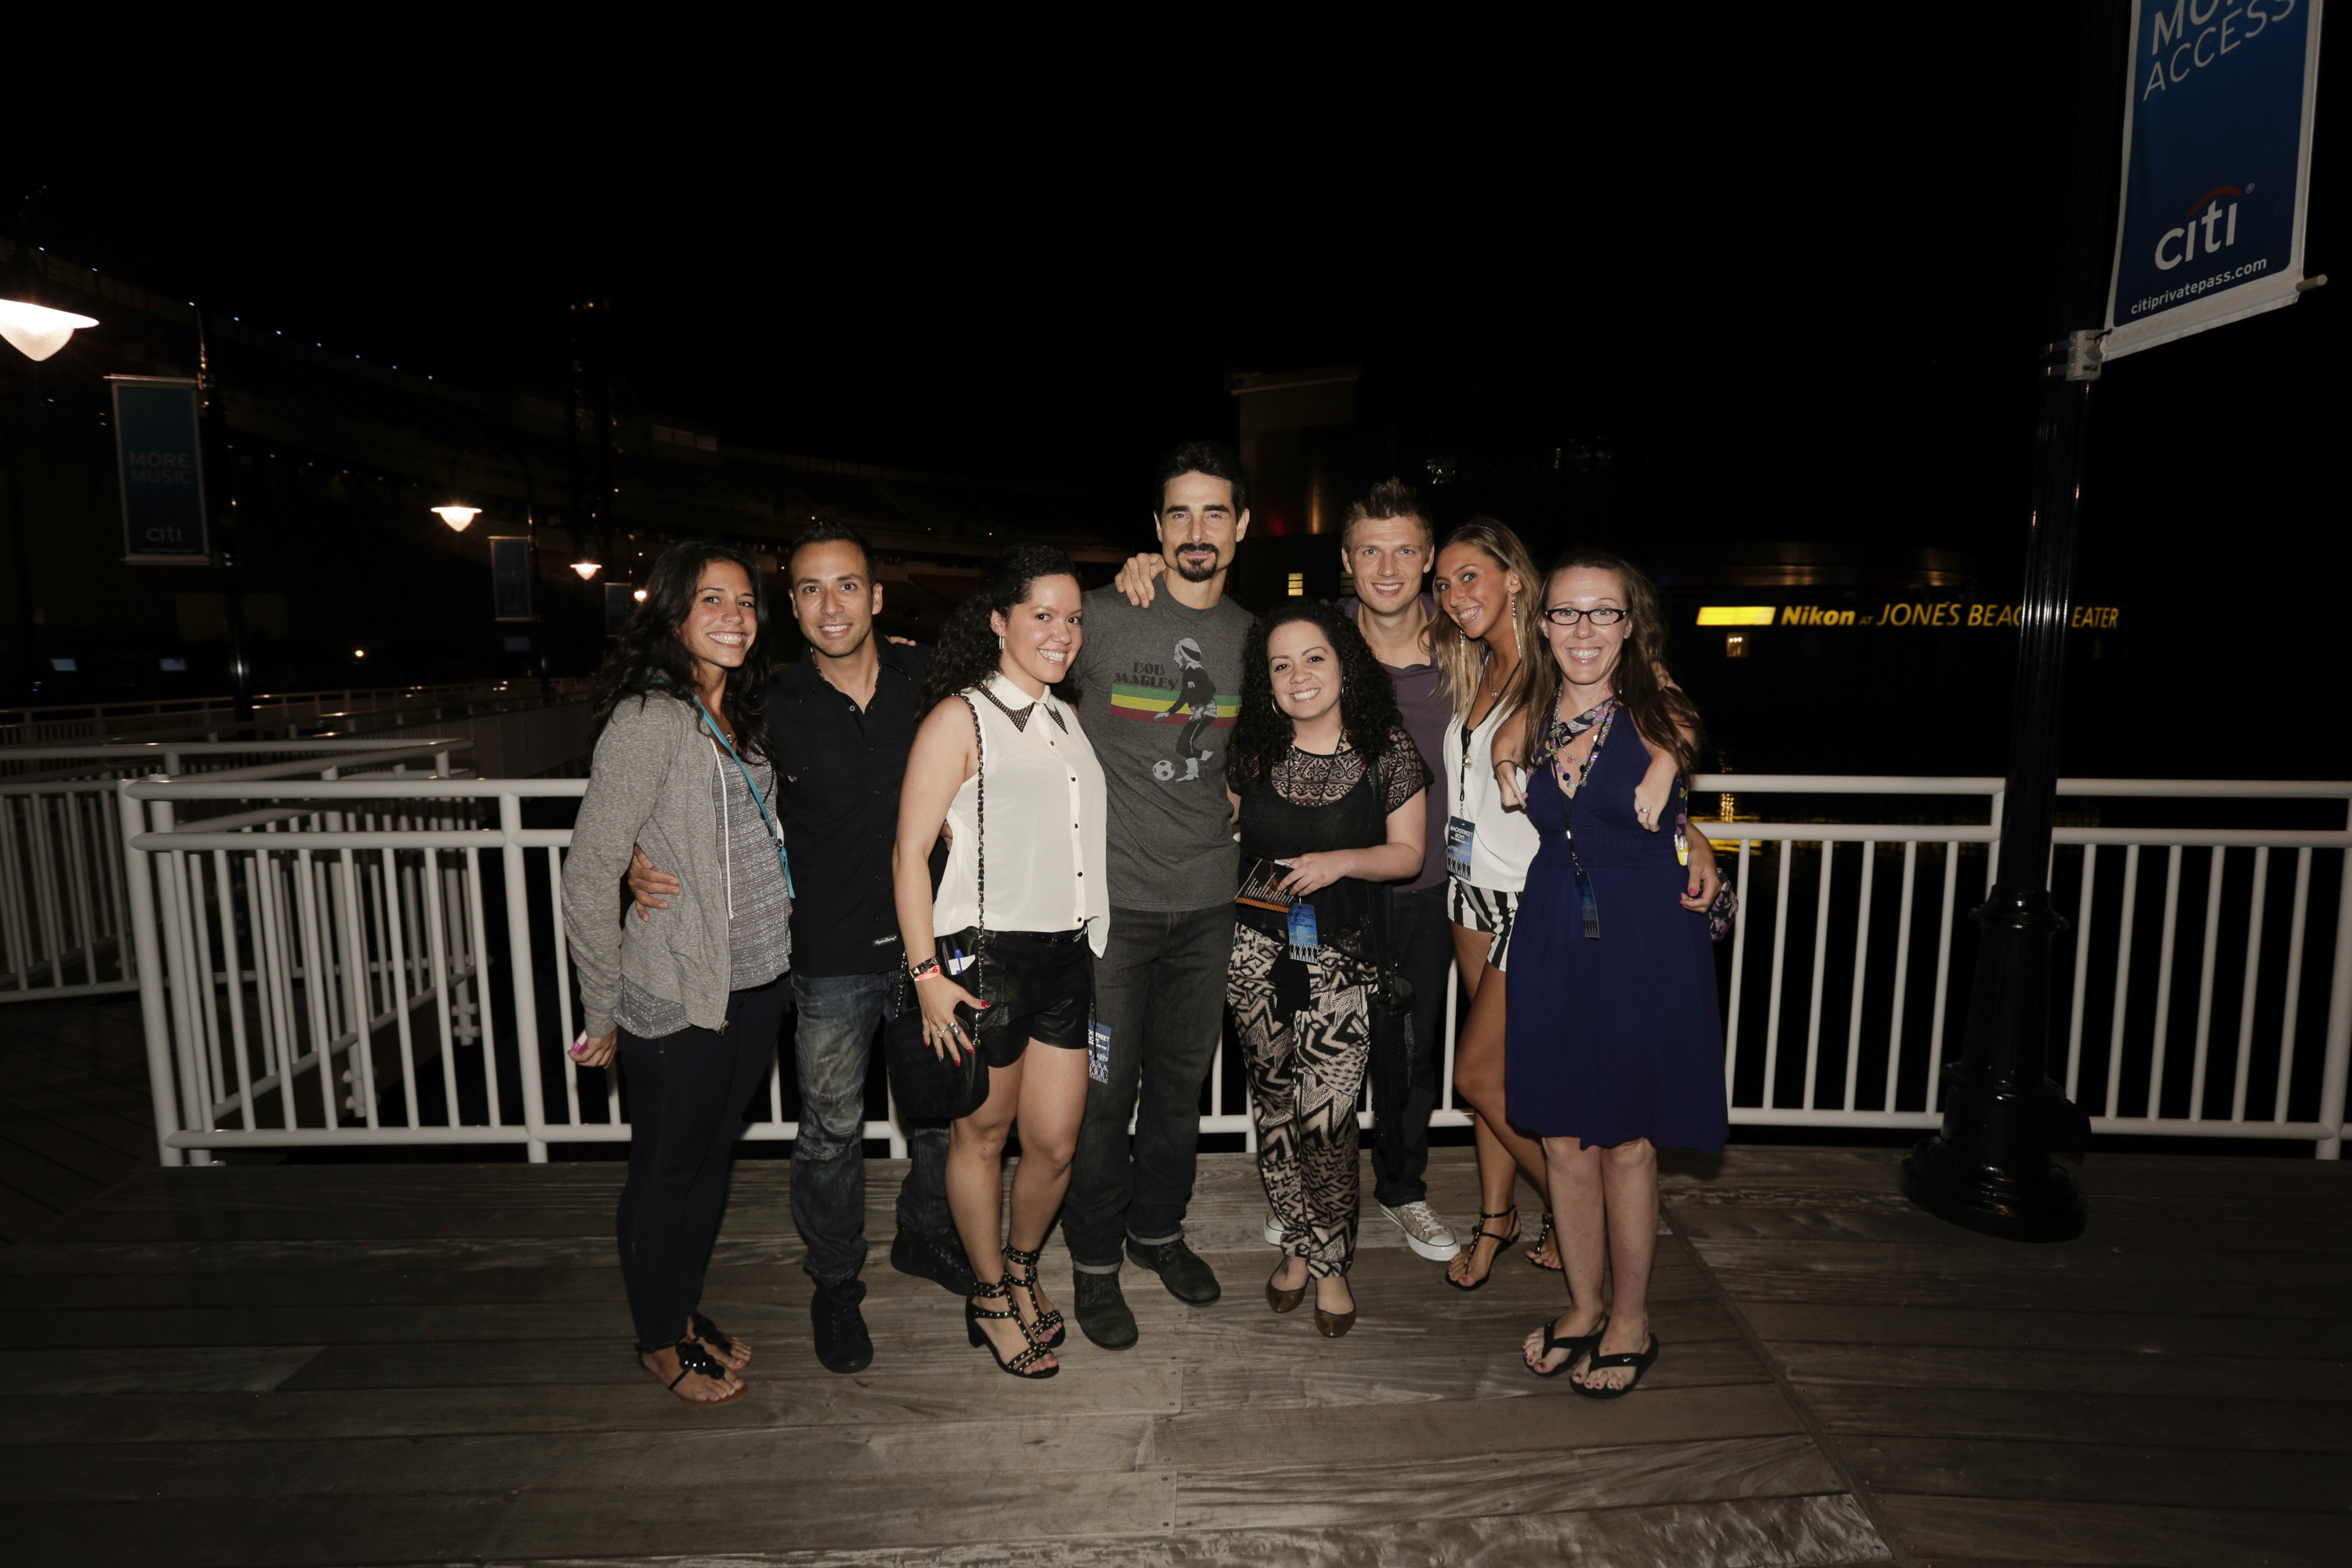 Bsb meet and greet style me bad bsb meet and greet m4hsunfo